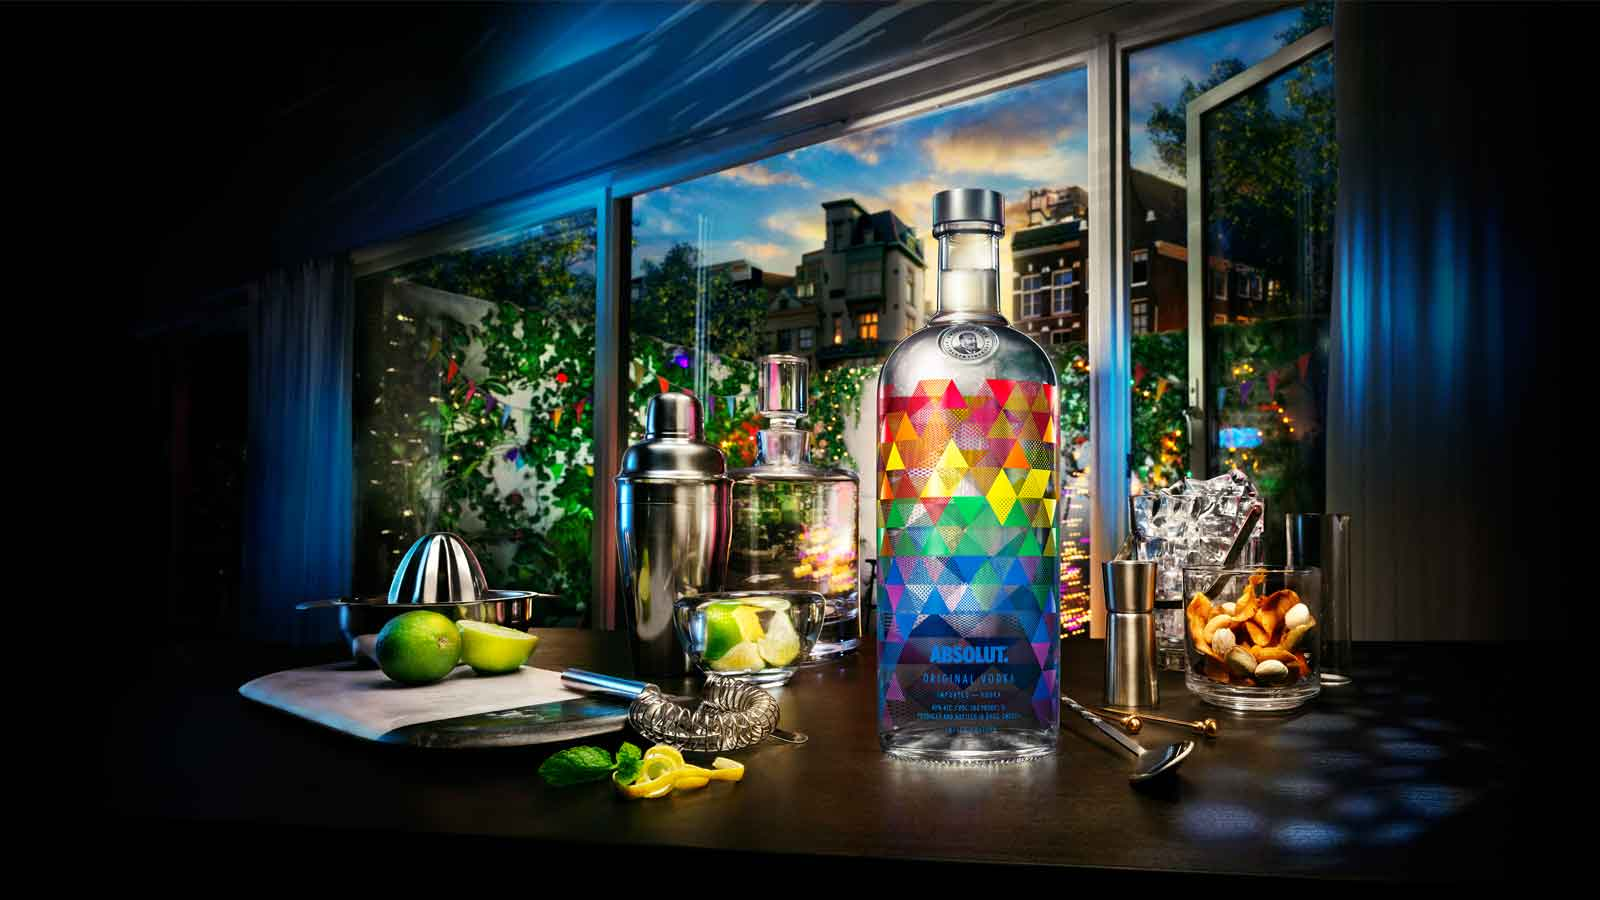 Absolut continues to stir things up with new Limited Edition